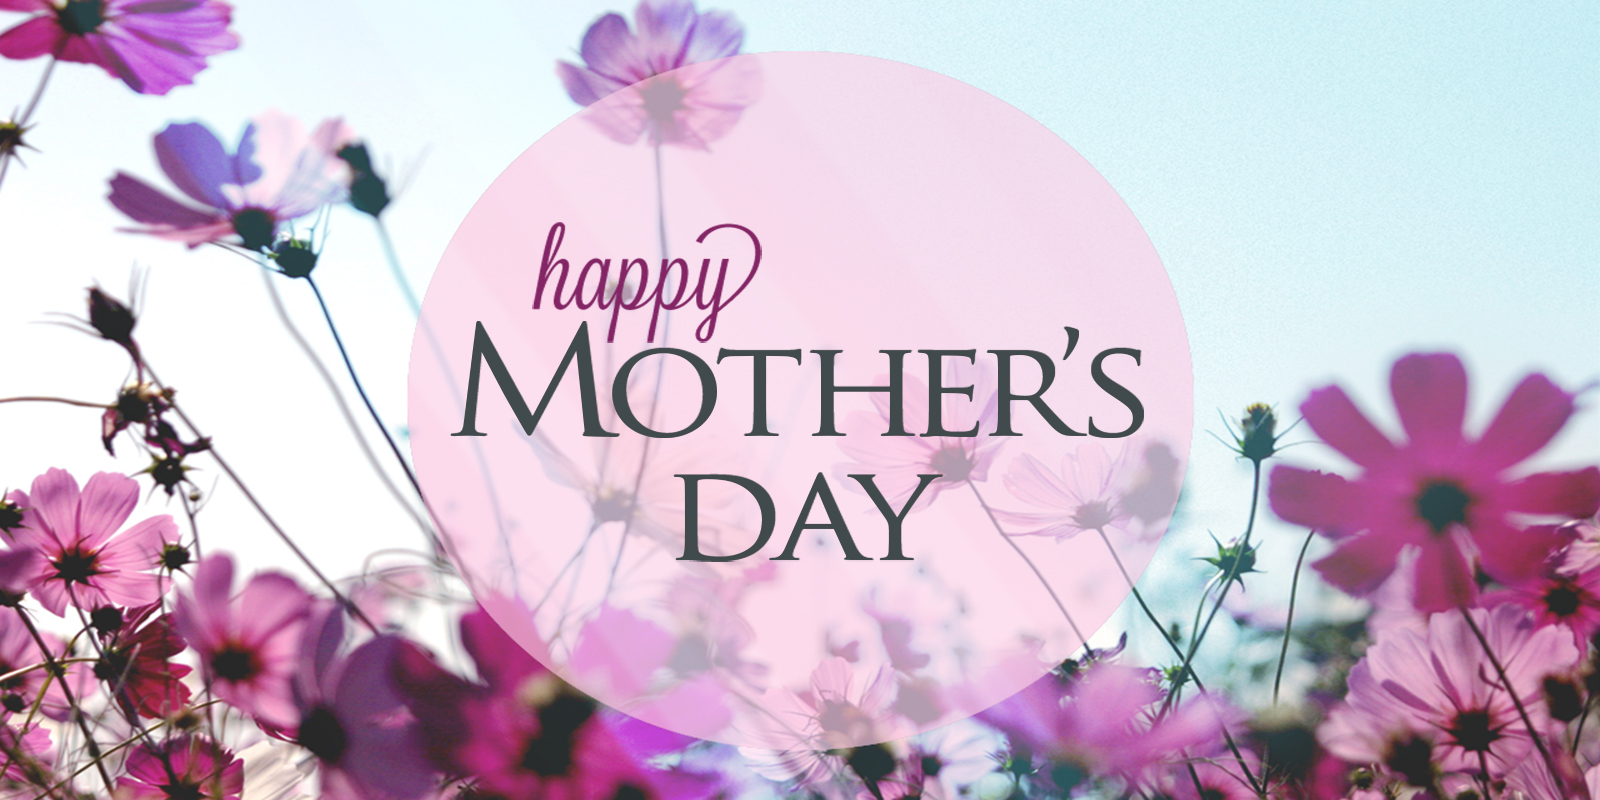 Mothers Day Images Free Download